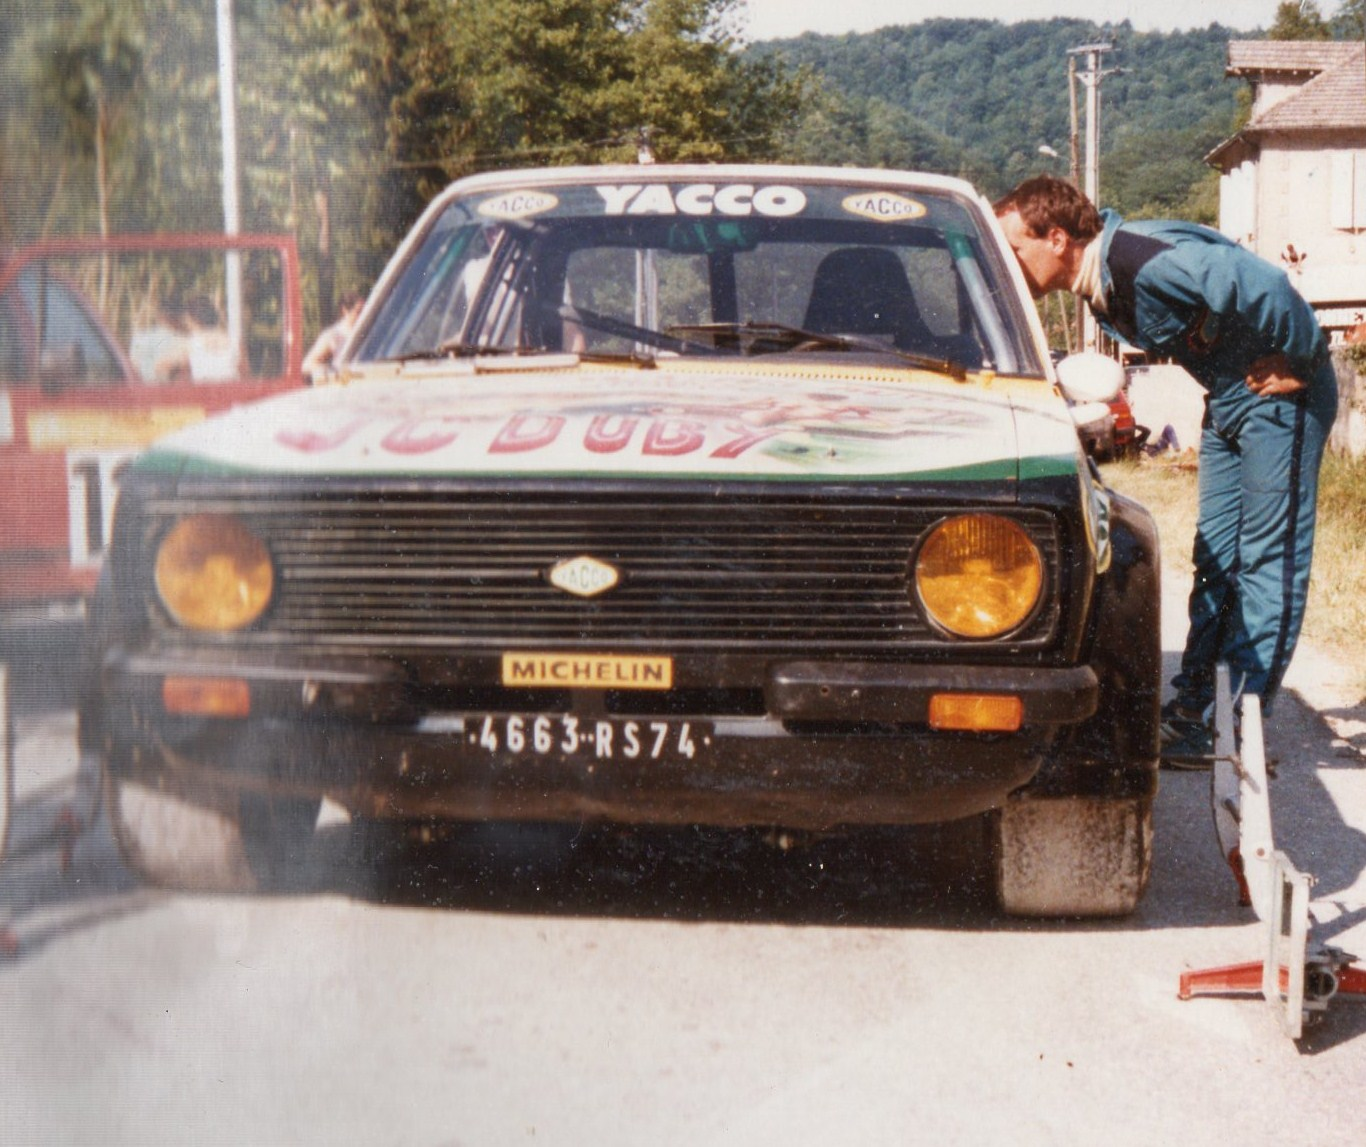 Jean Christian Duby en 1984 : Ford Escort  RS Mk2 Groupe B